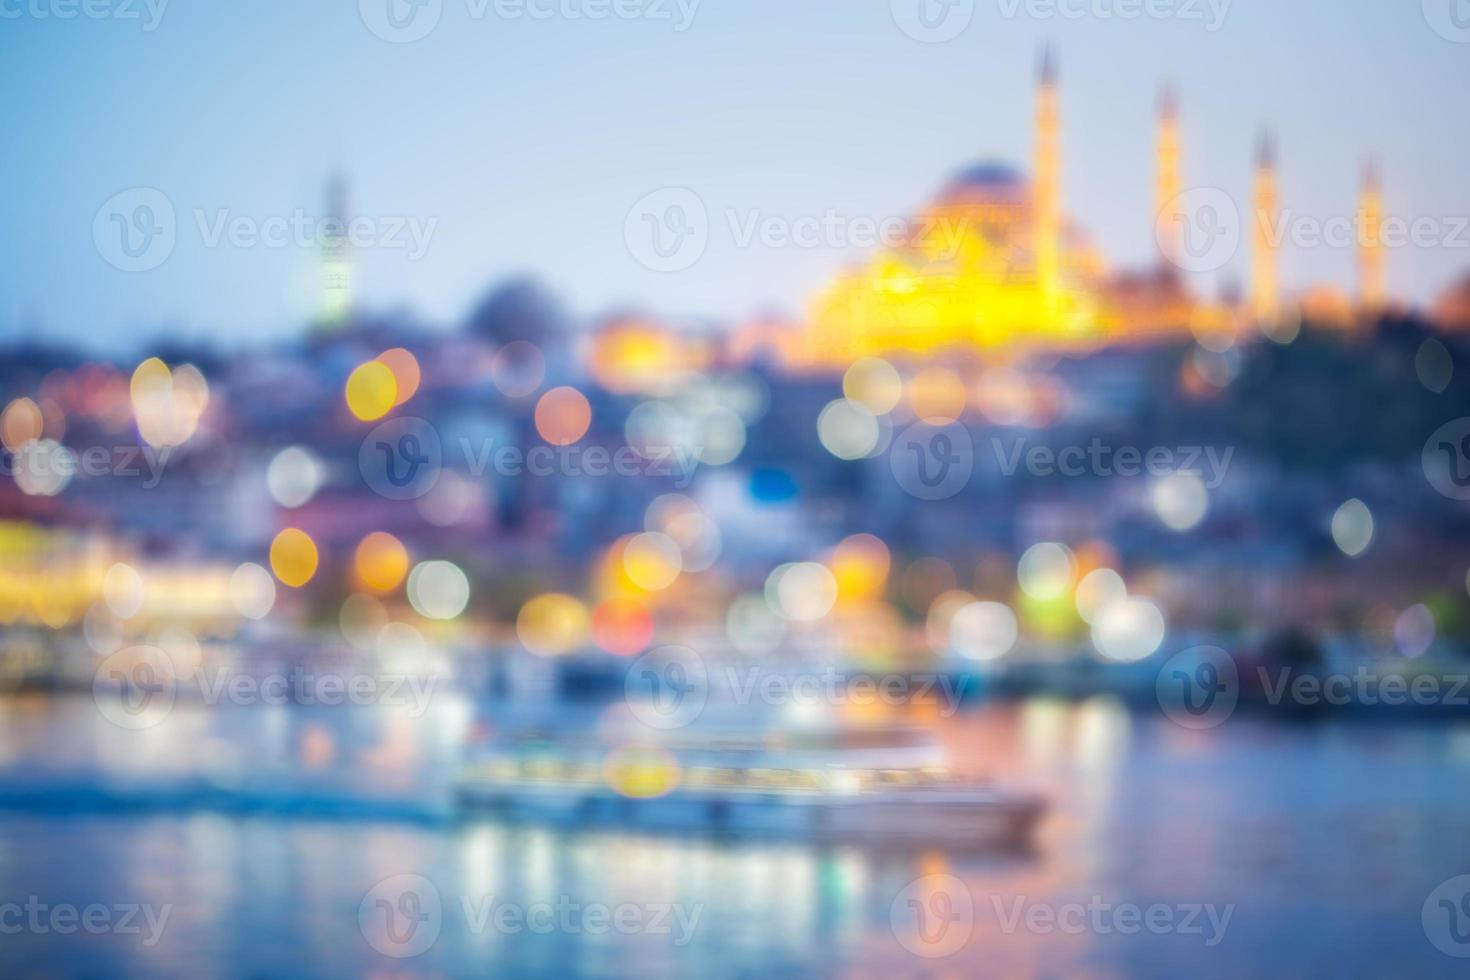 moskee in istanbul foto